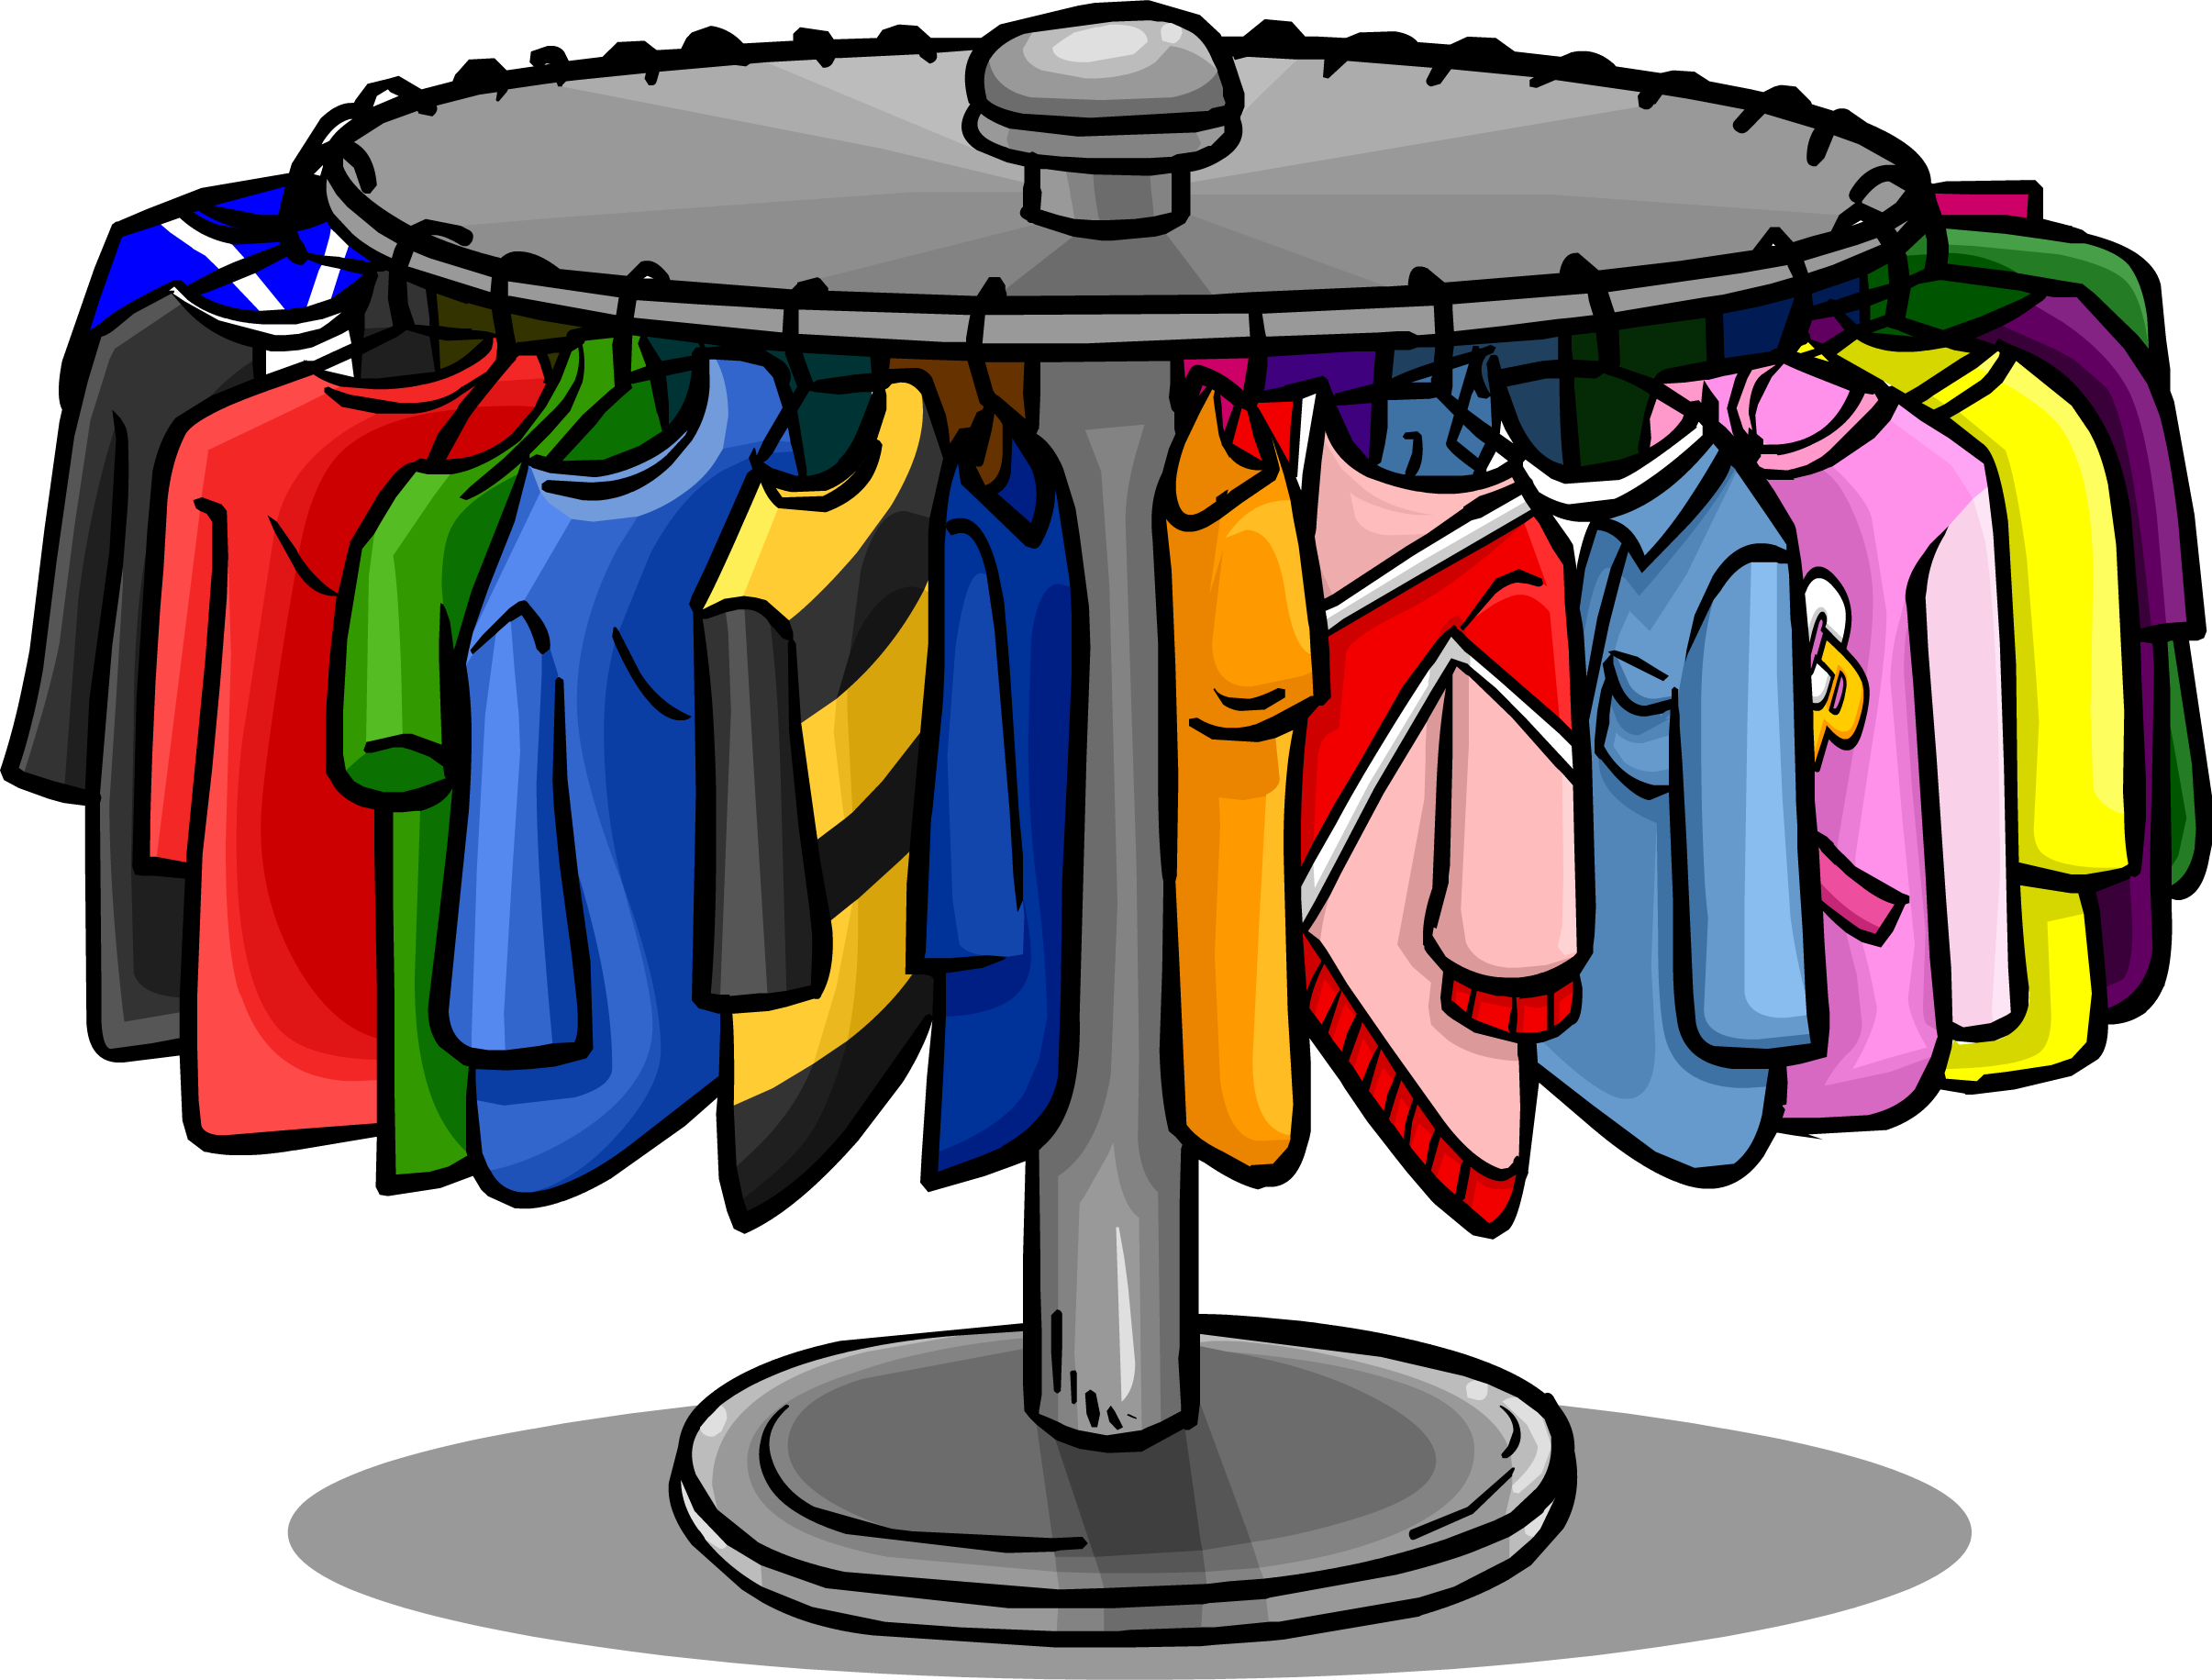 clothes clipart images - photo #16